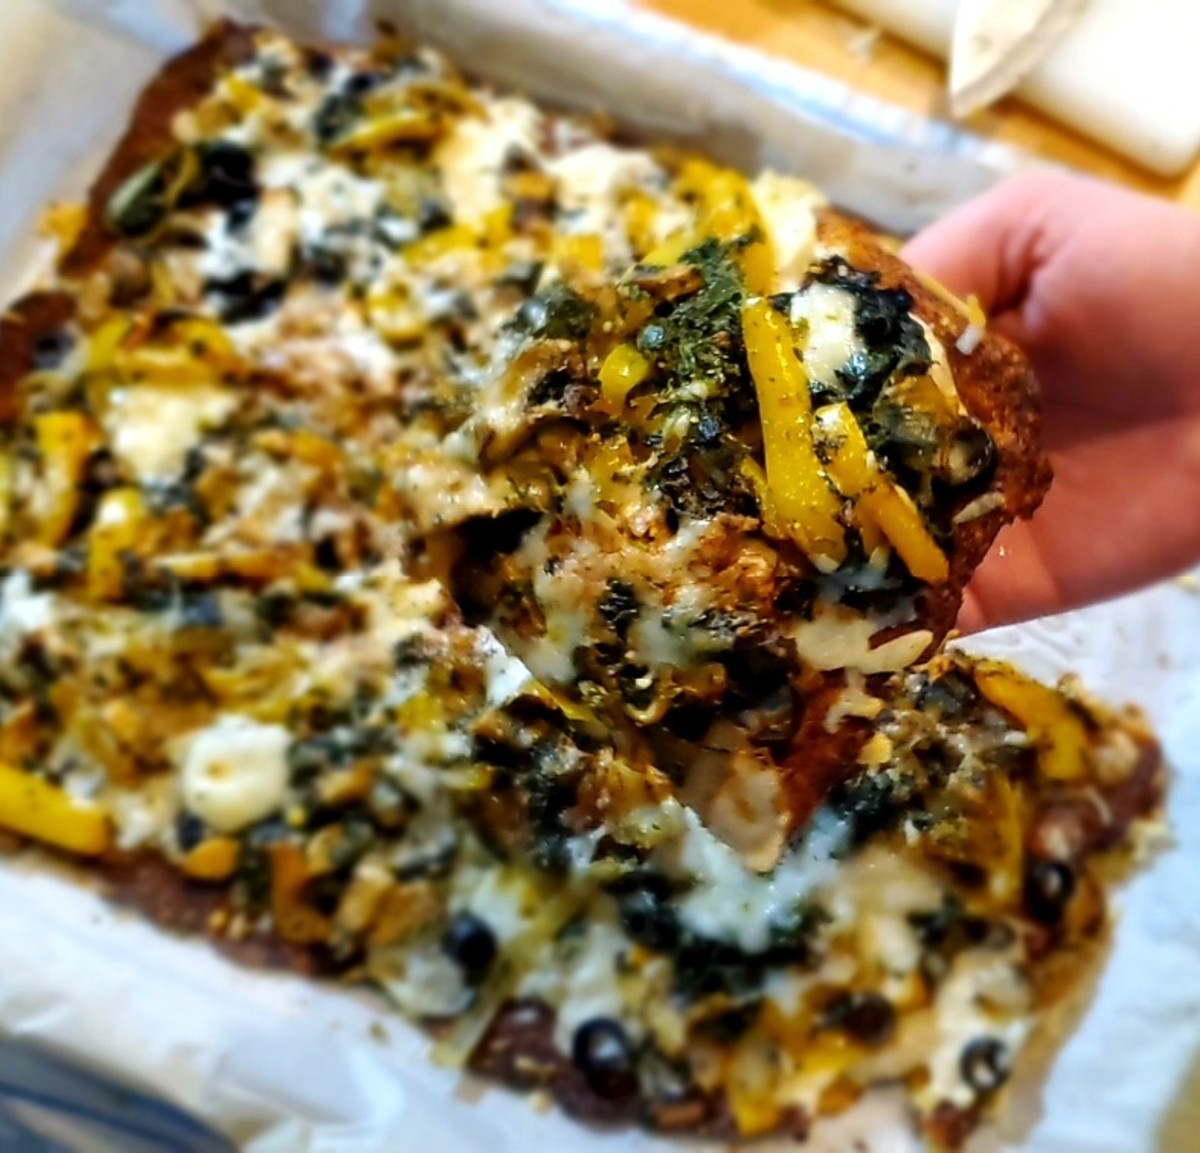 Finally! A cauliflower crust pizza you can actually hold in your hand!